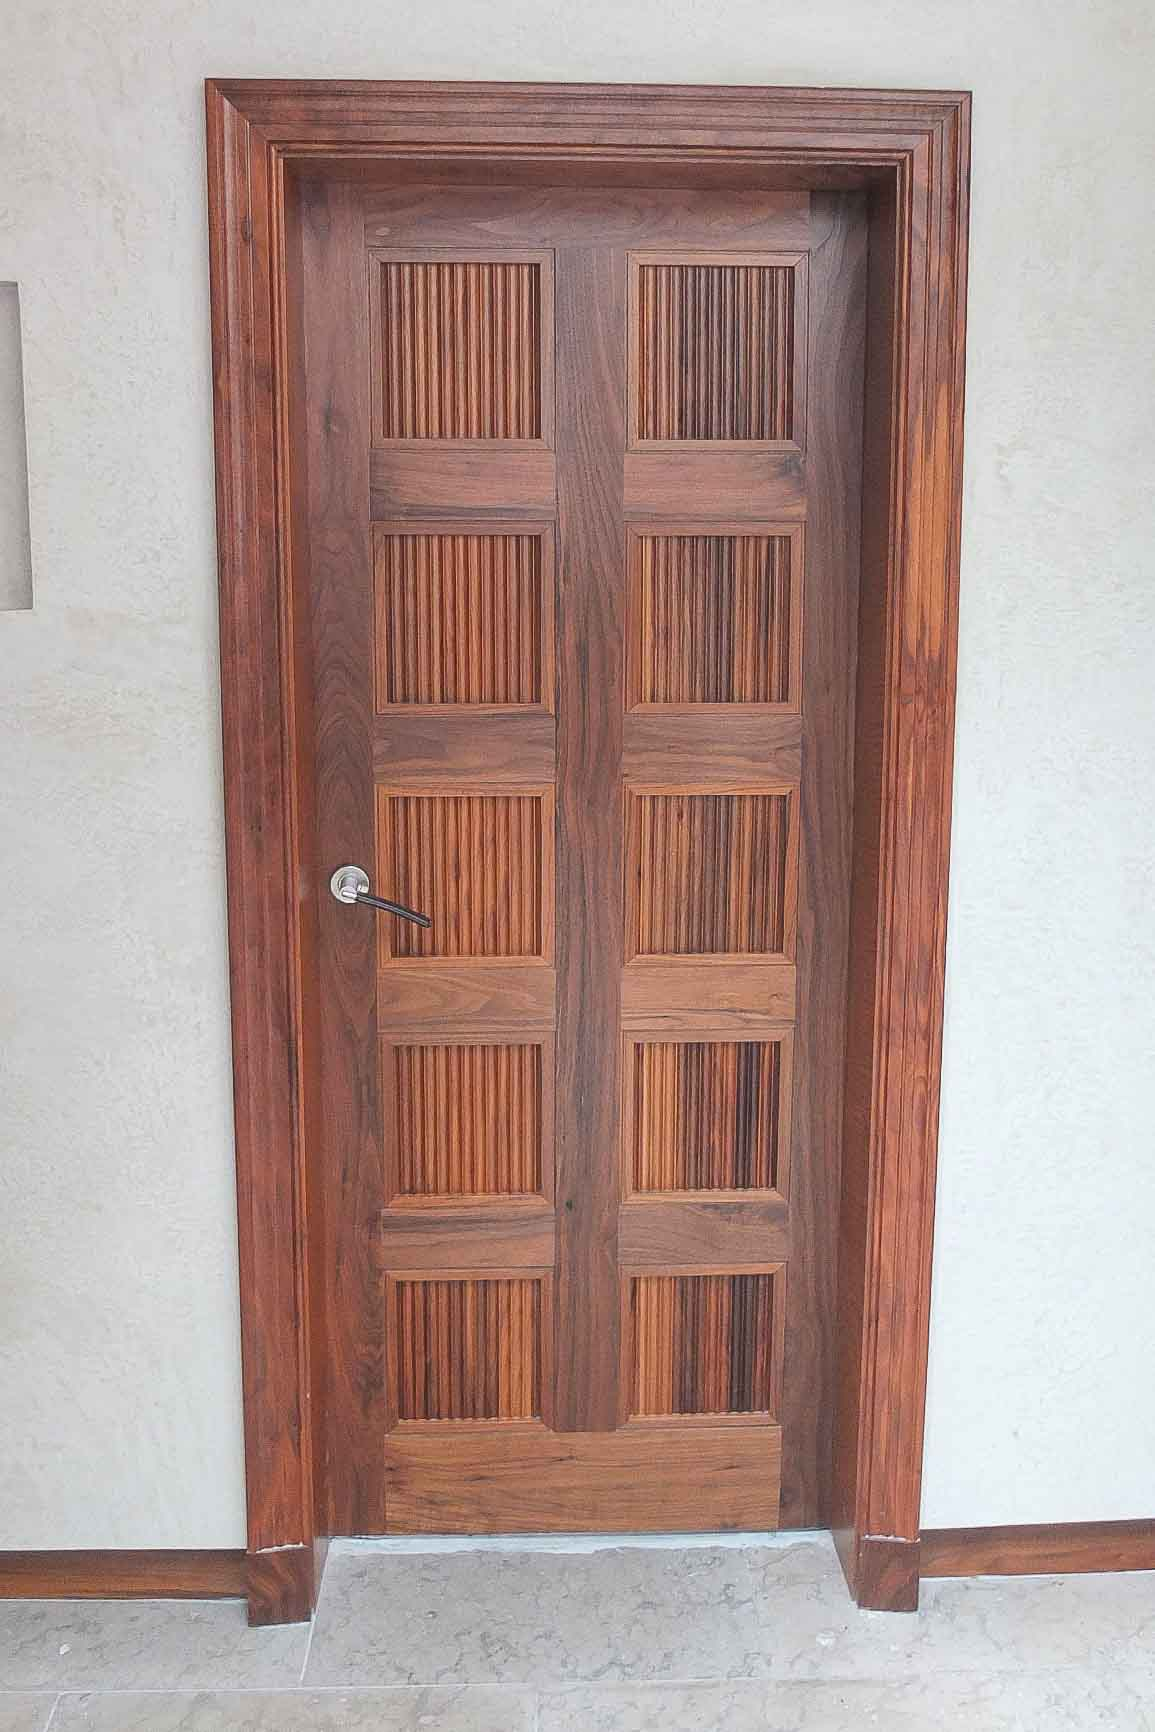 Jack Hyams - Custom Interior Doors Designs & Manufacturer